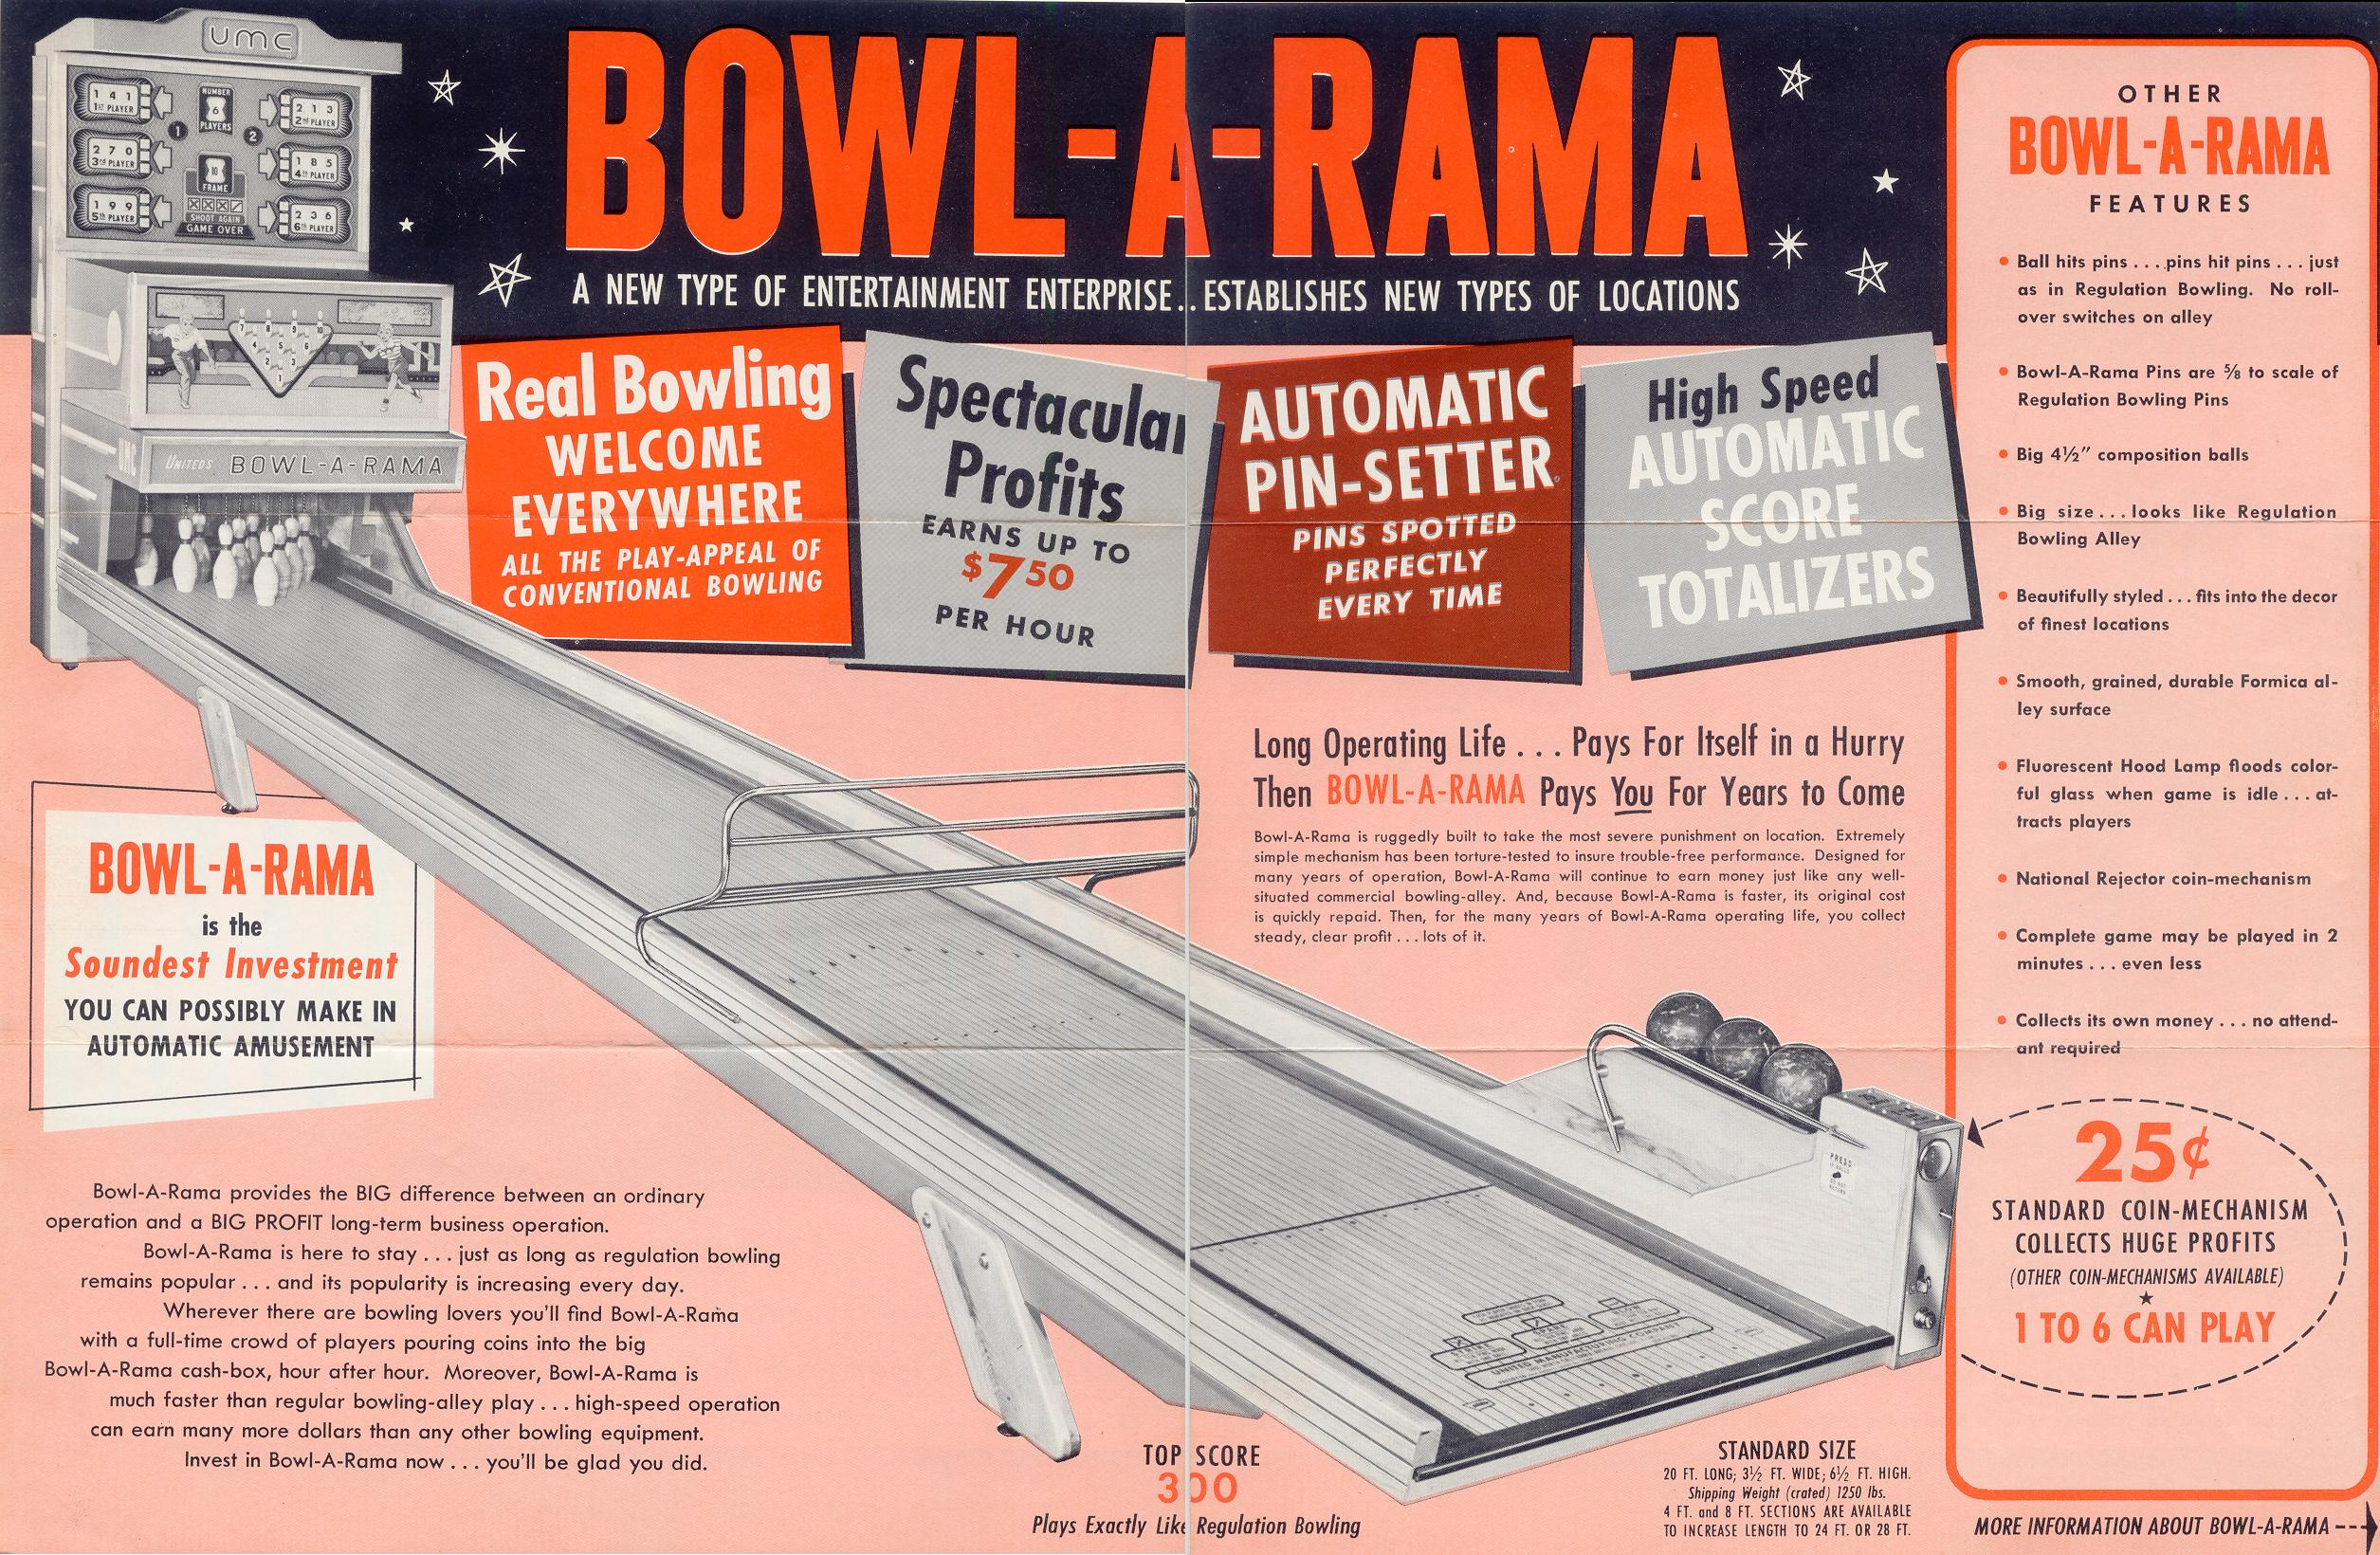 United Bowl-a-Rama Bowling Alley deluxe Ball Bowler 1960 coin